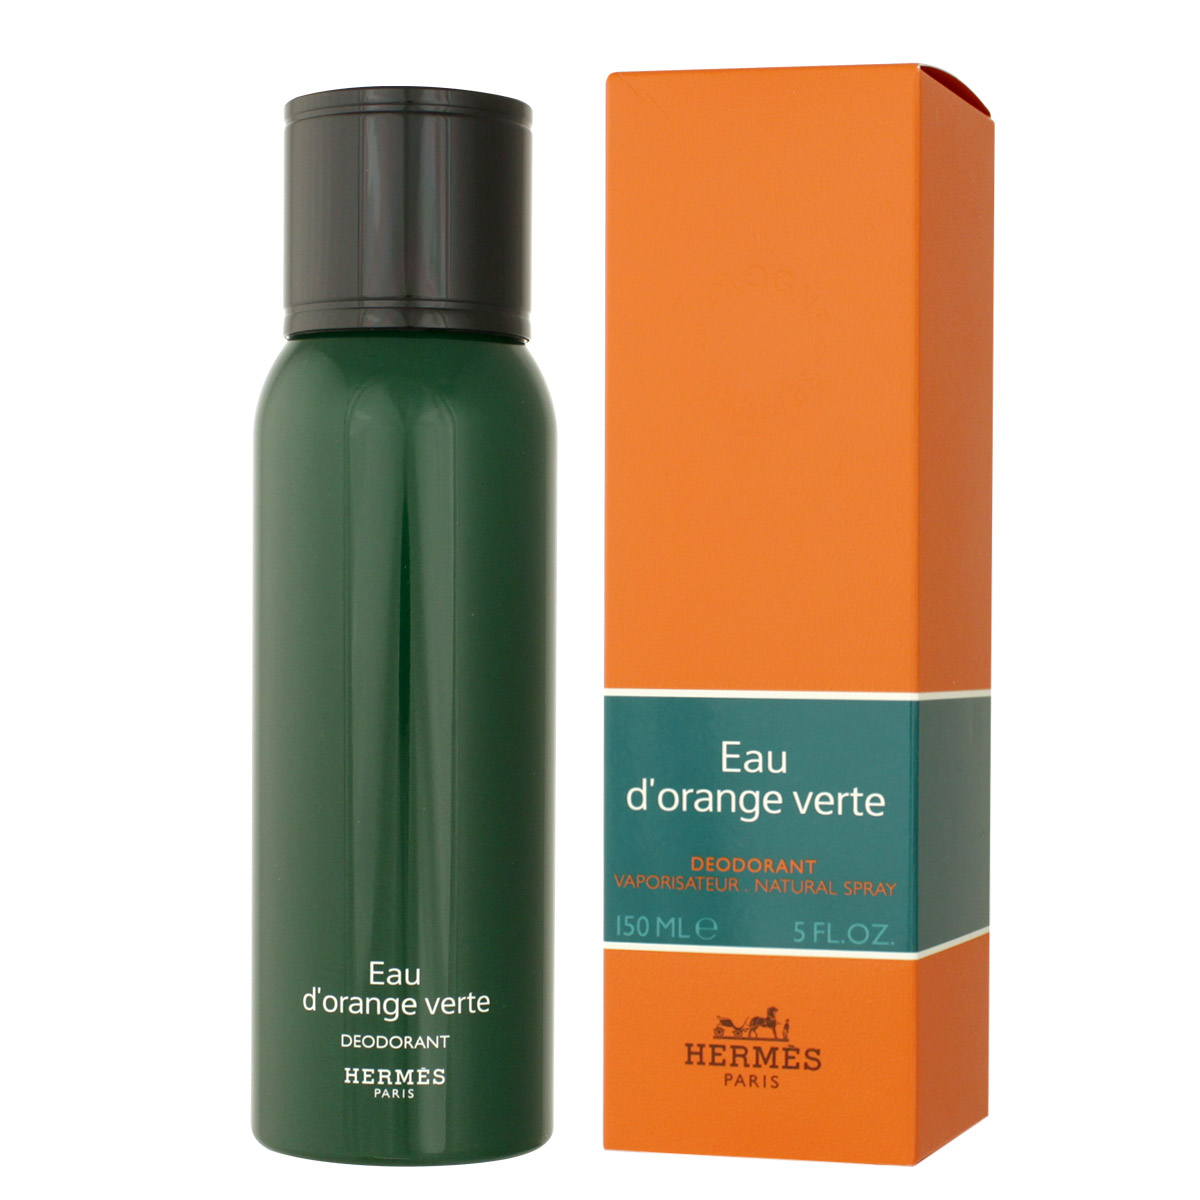 Hermès Eau D'Orange Verte Deodorant im Spray 150 ml (unisex) 83882